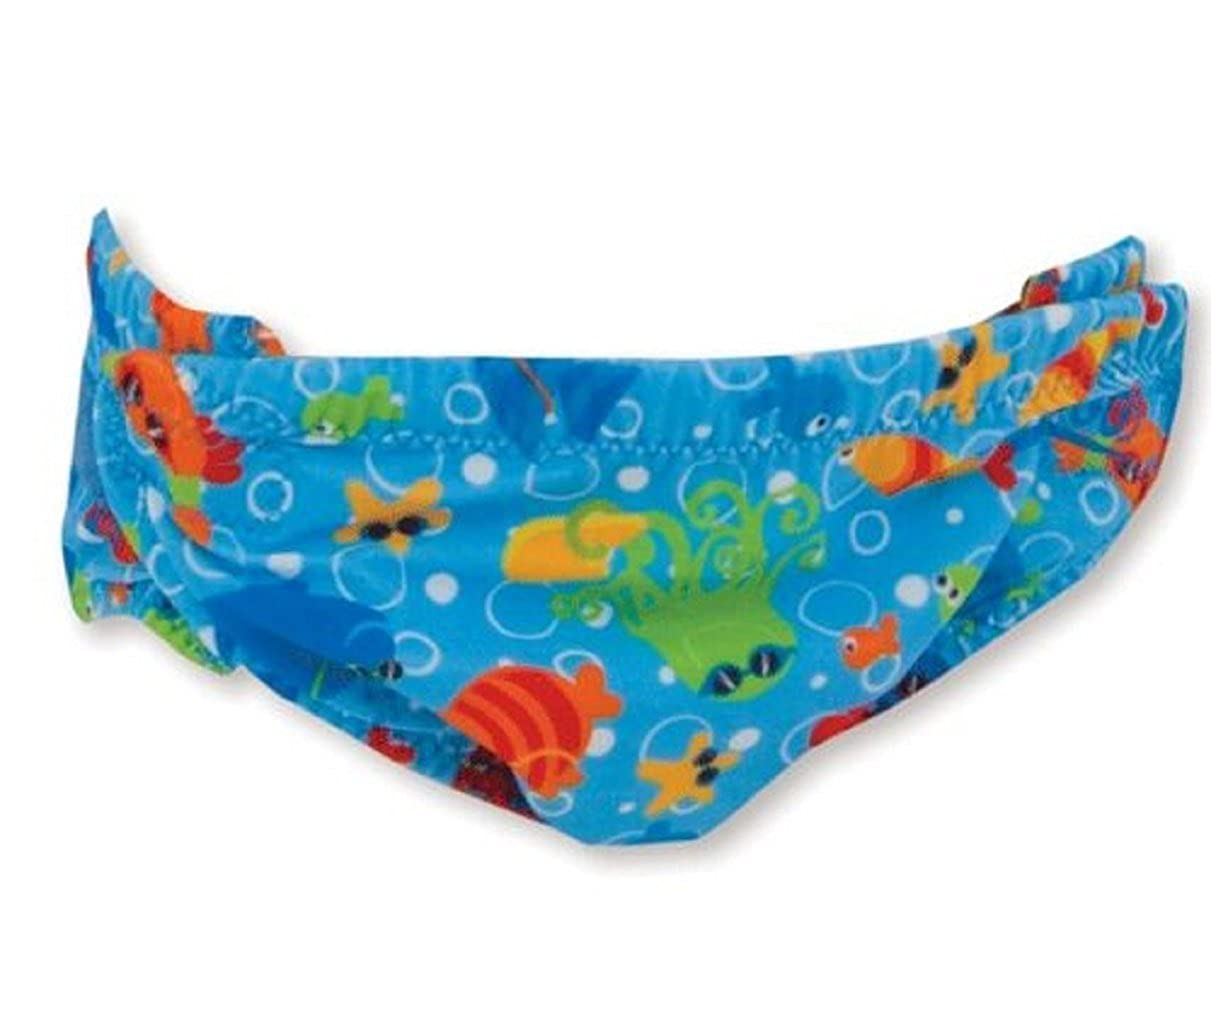 Zoggs Elasticated Baby Swim Nappy 1-2 Years- Blue BD083